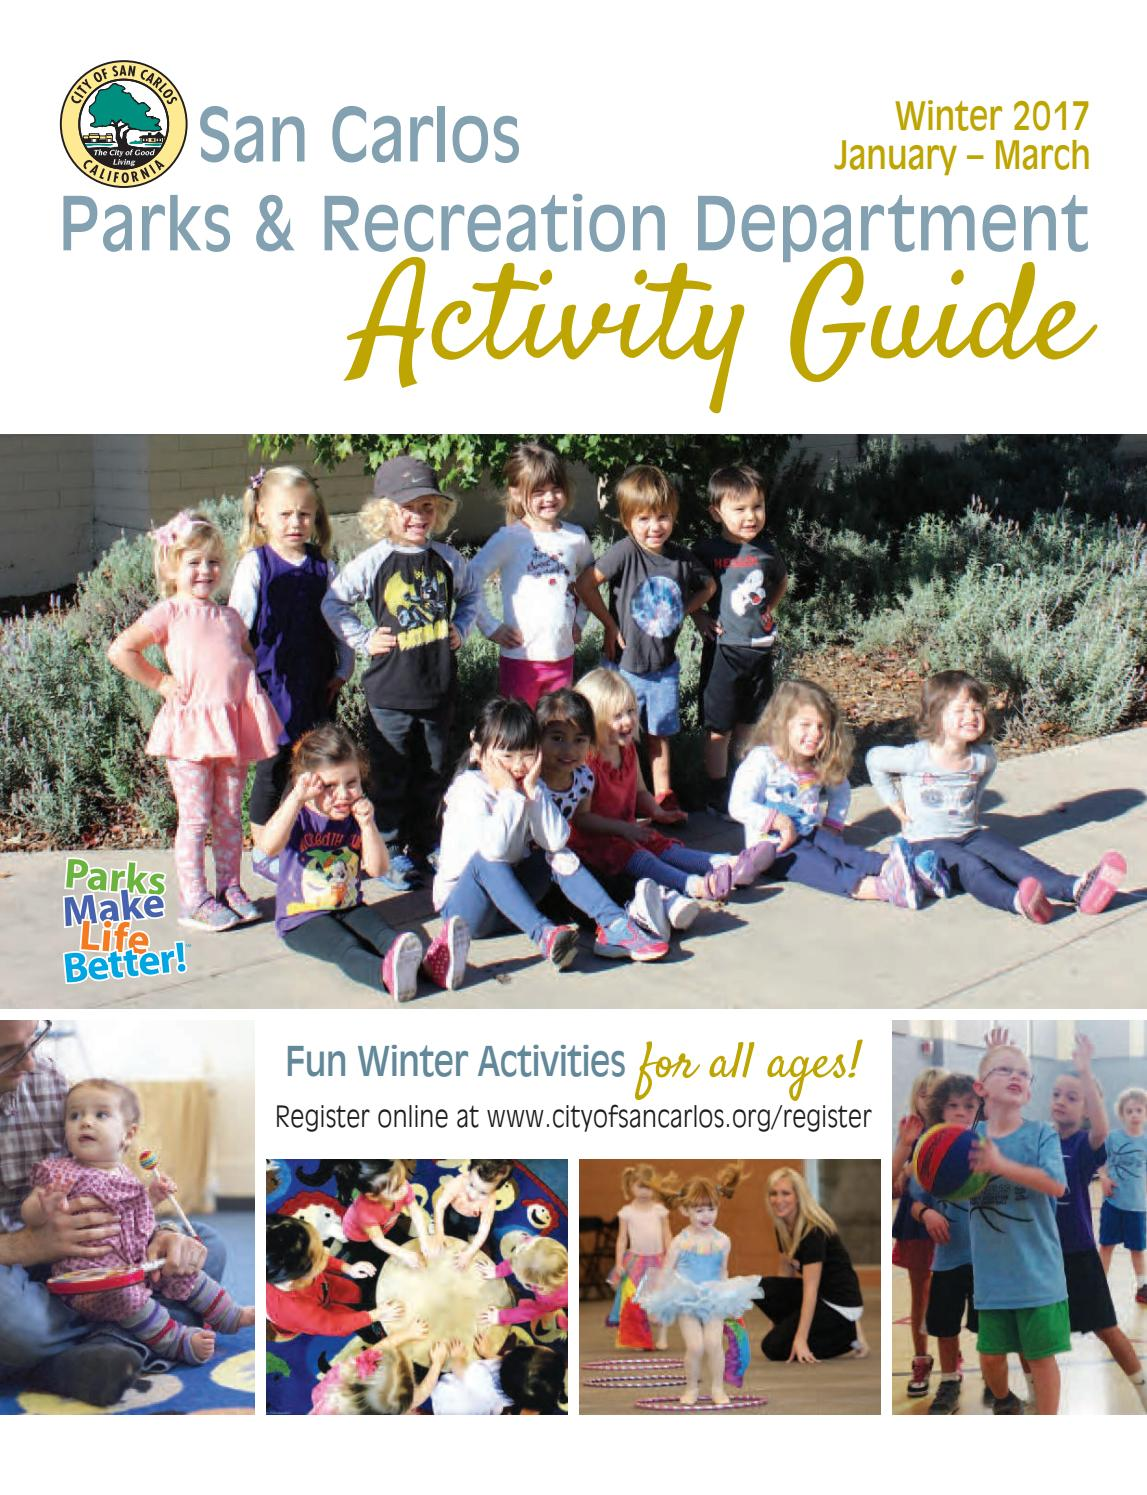 San Carlos Winter Activity Guide By Parks And Recreation